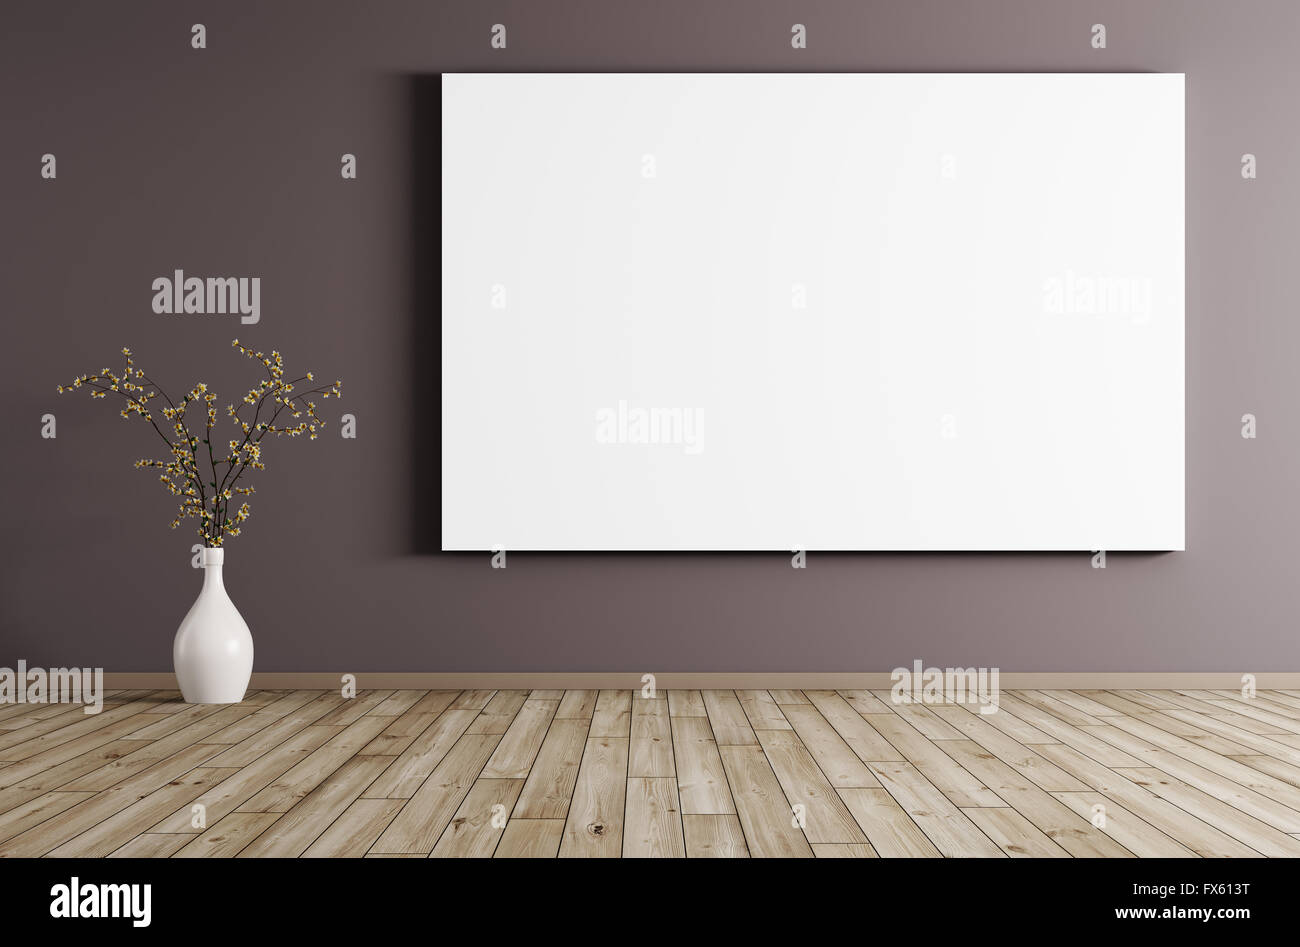 big poster and flower vase in room with purple wall and wooden floor interior background 3d rendering - Wooden Floor Vase